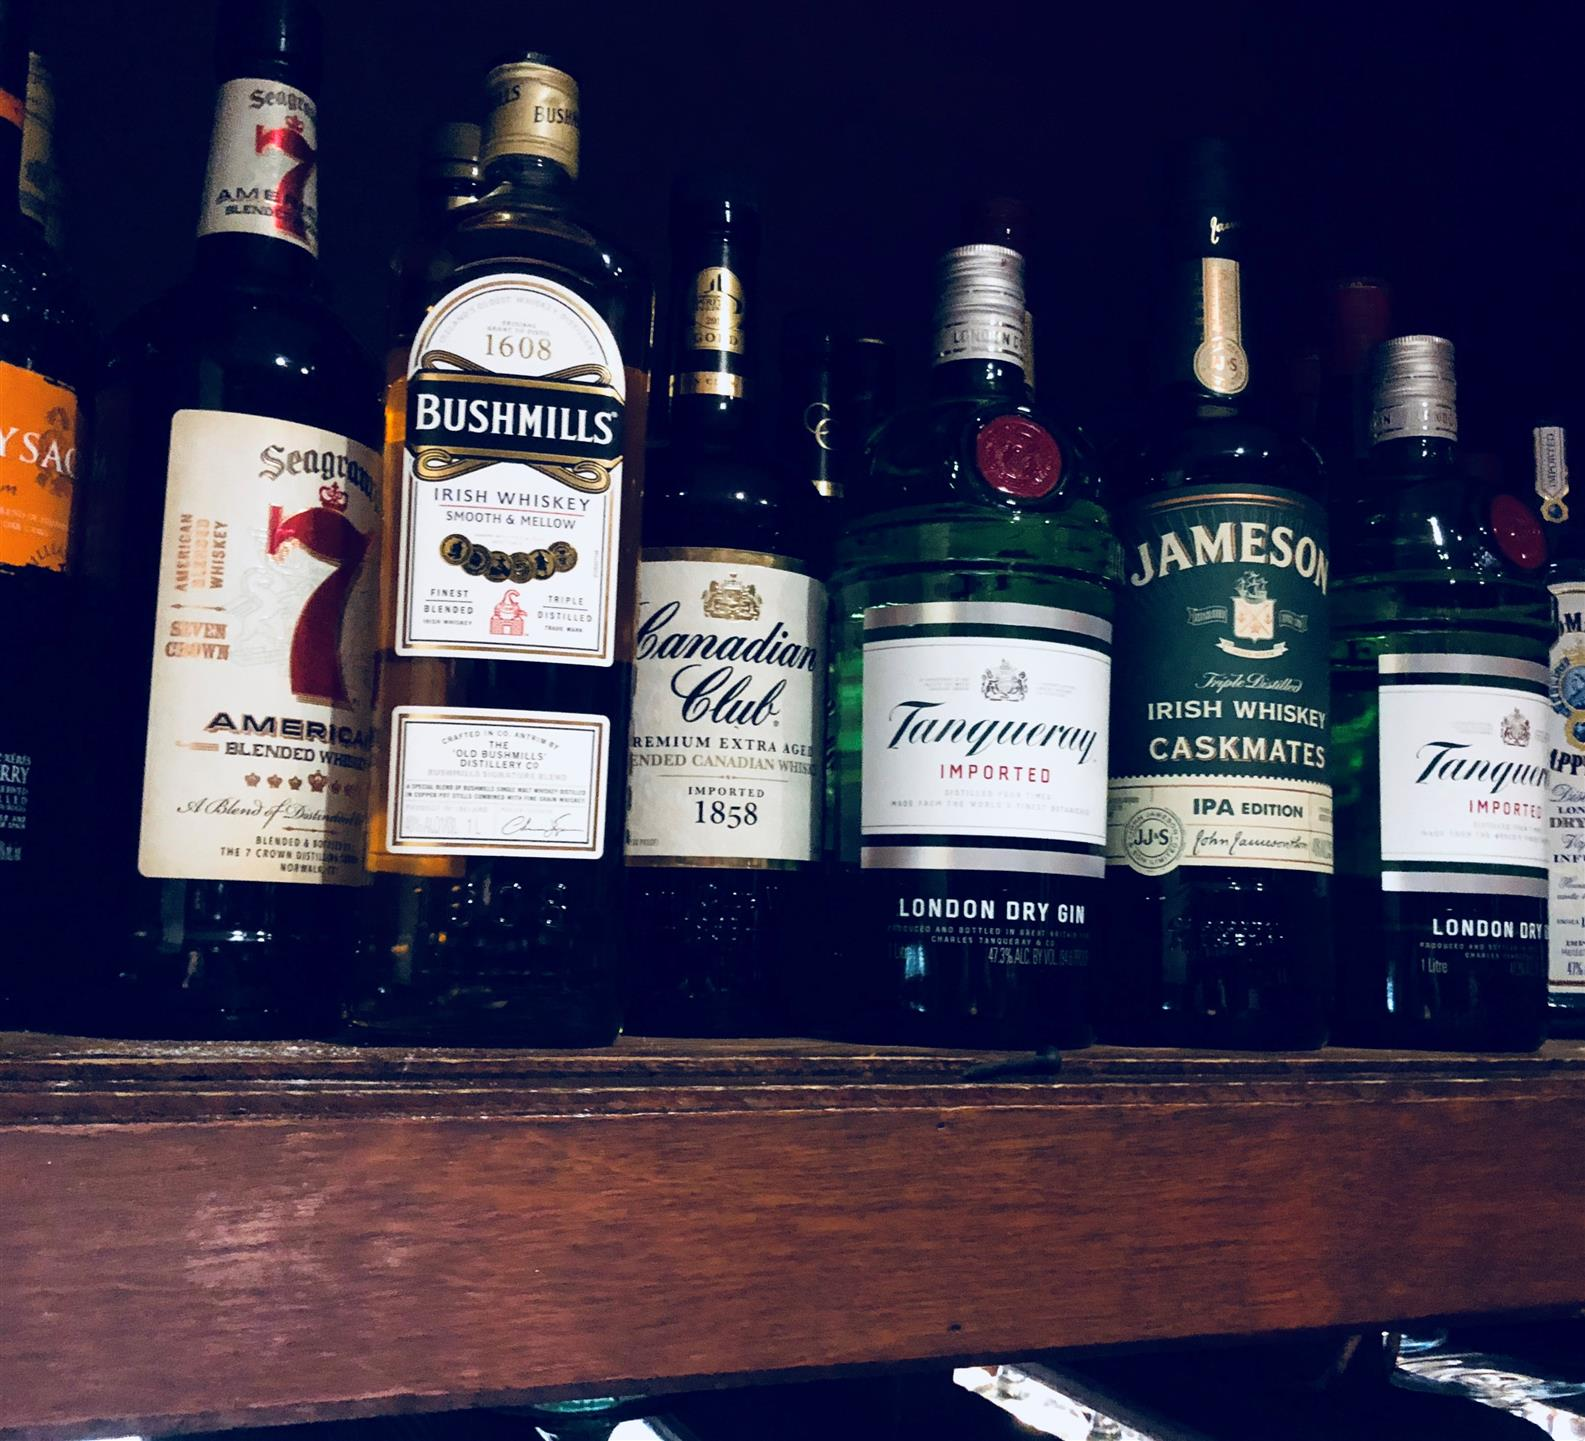 display of various bottles of whiskey